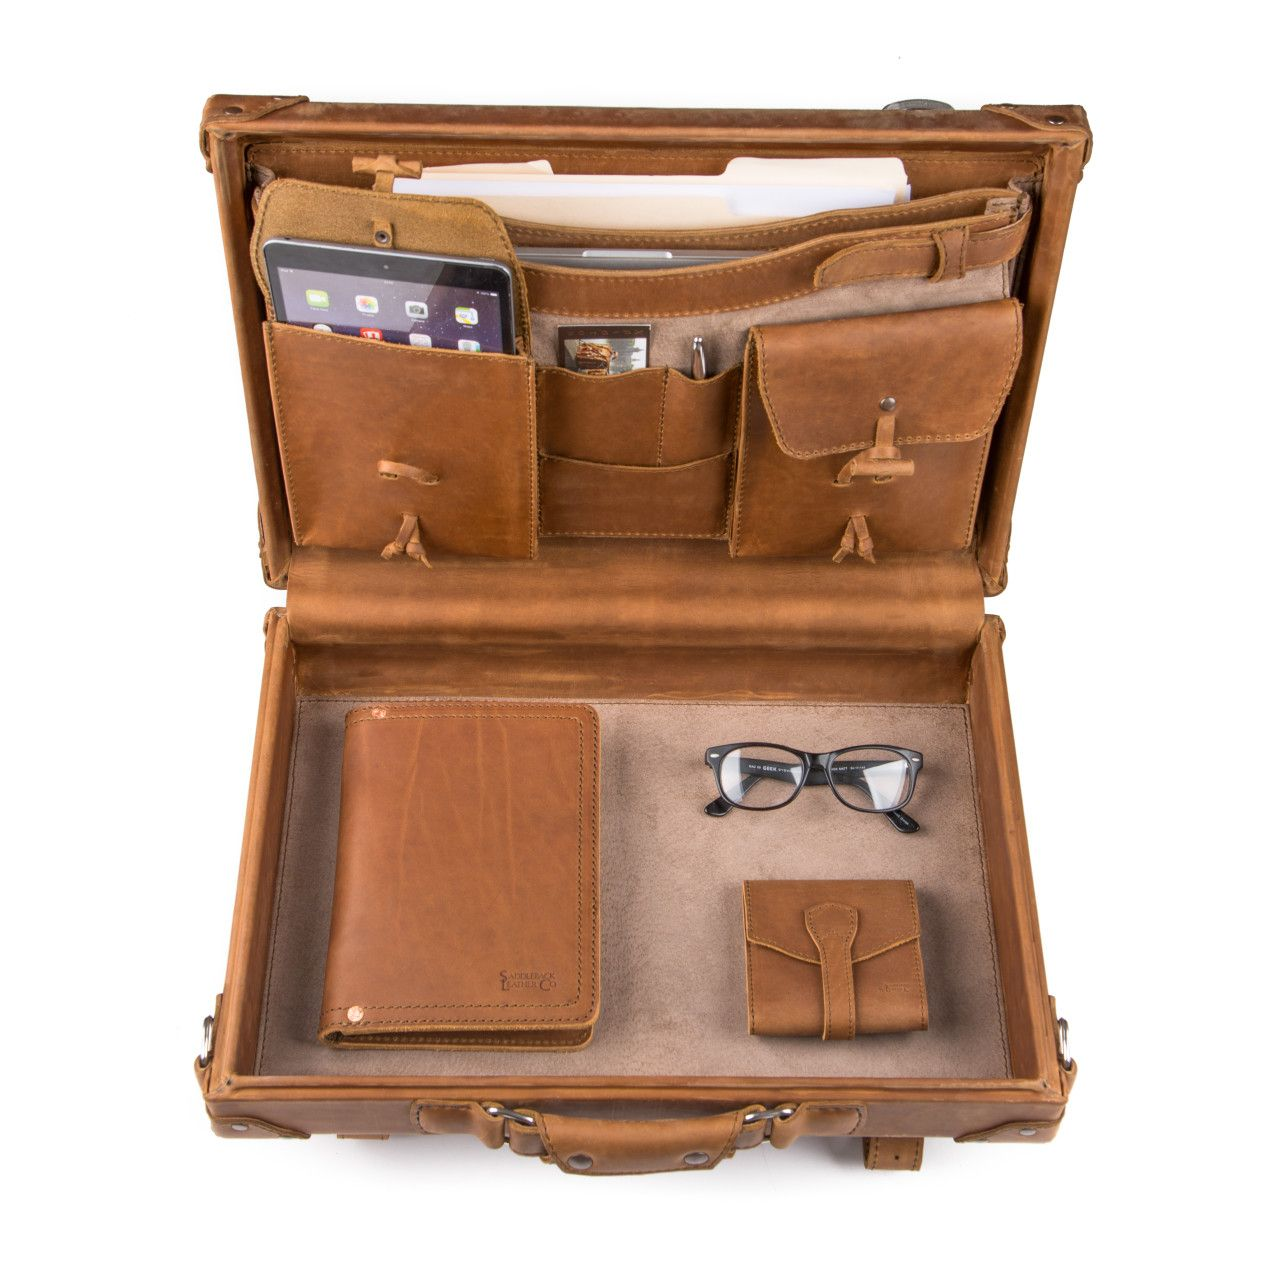 hard sided leather briefcase medium in tobacco leather is great for office stuff